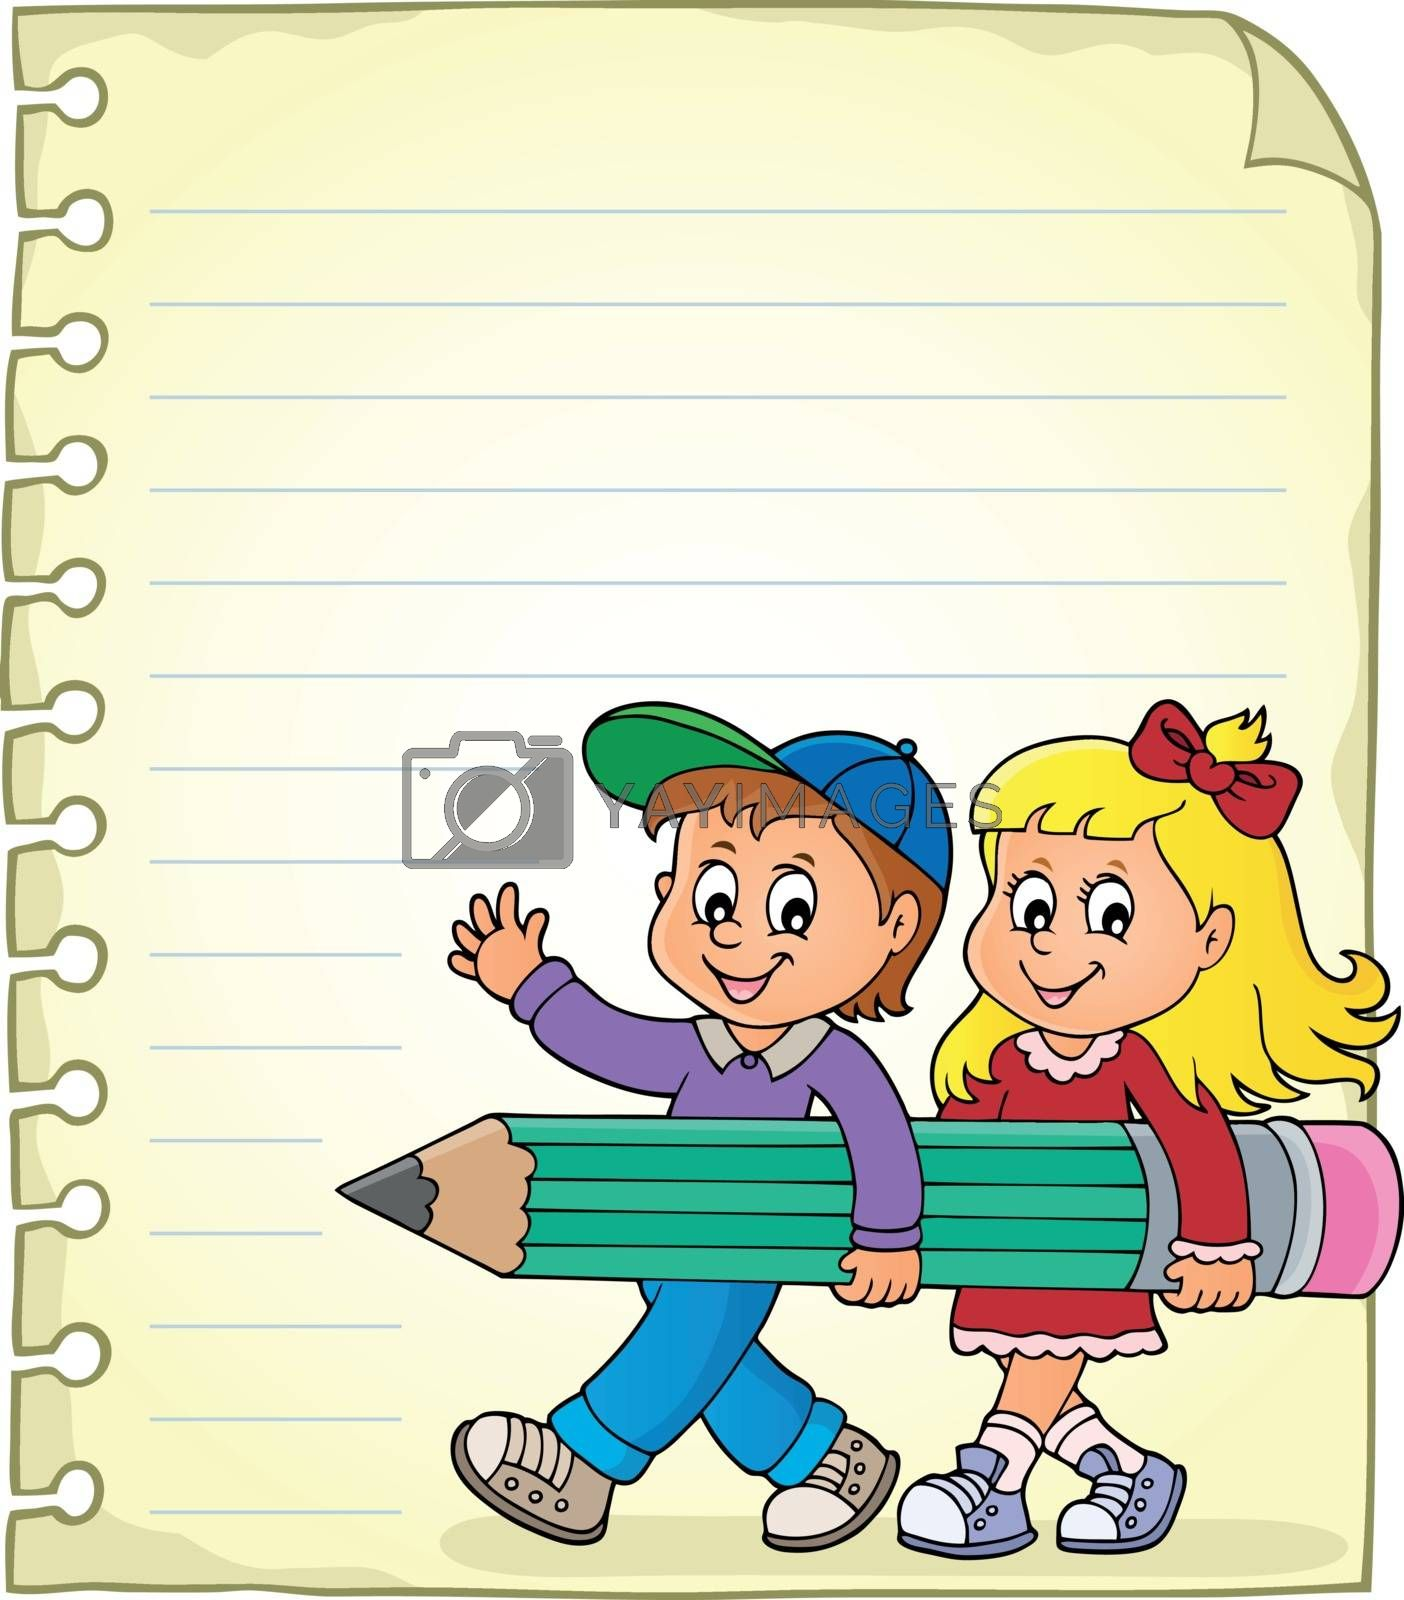 Notepad page with children and pencil - eps10 vector illustration.